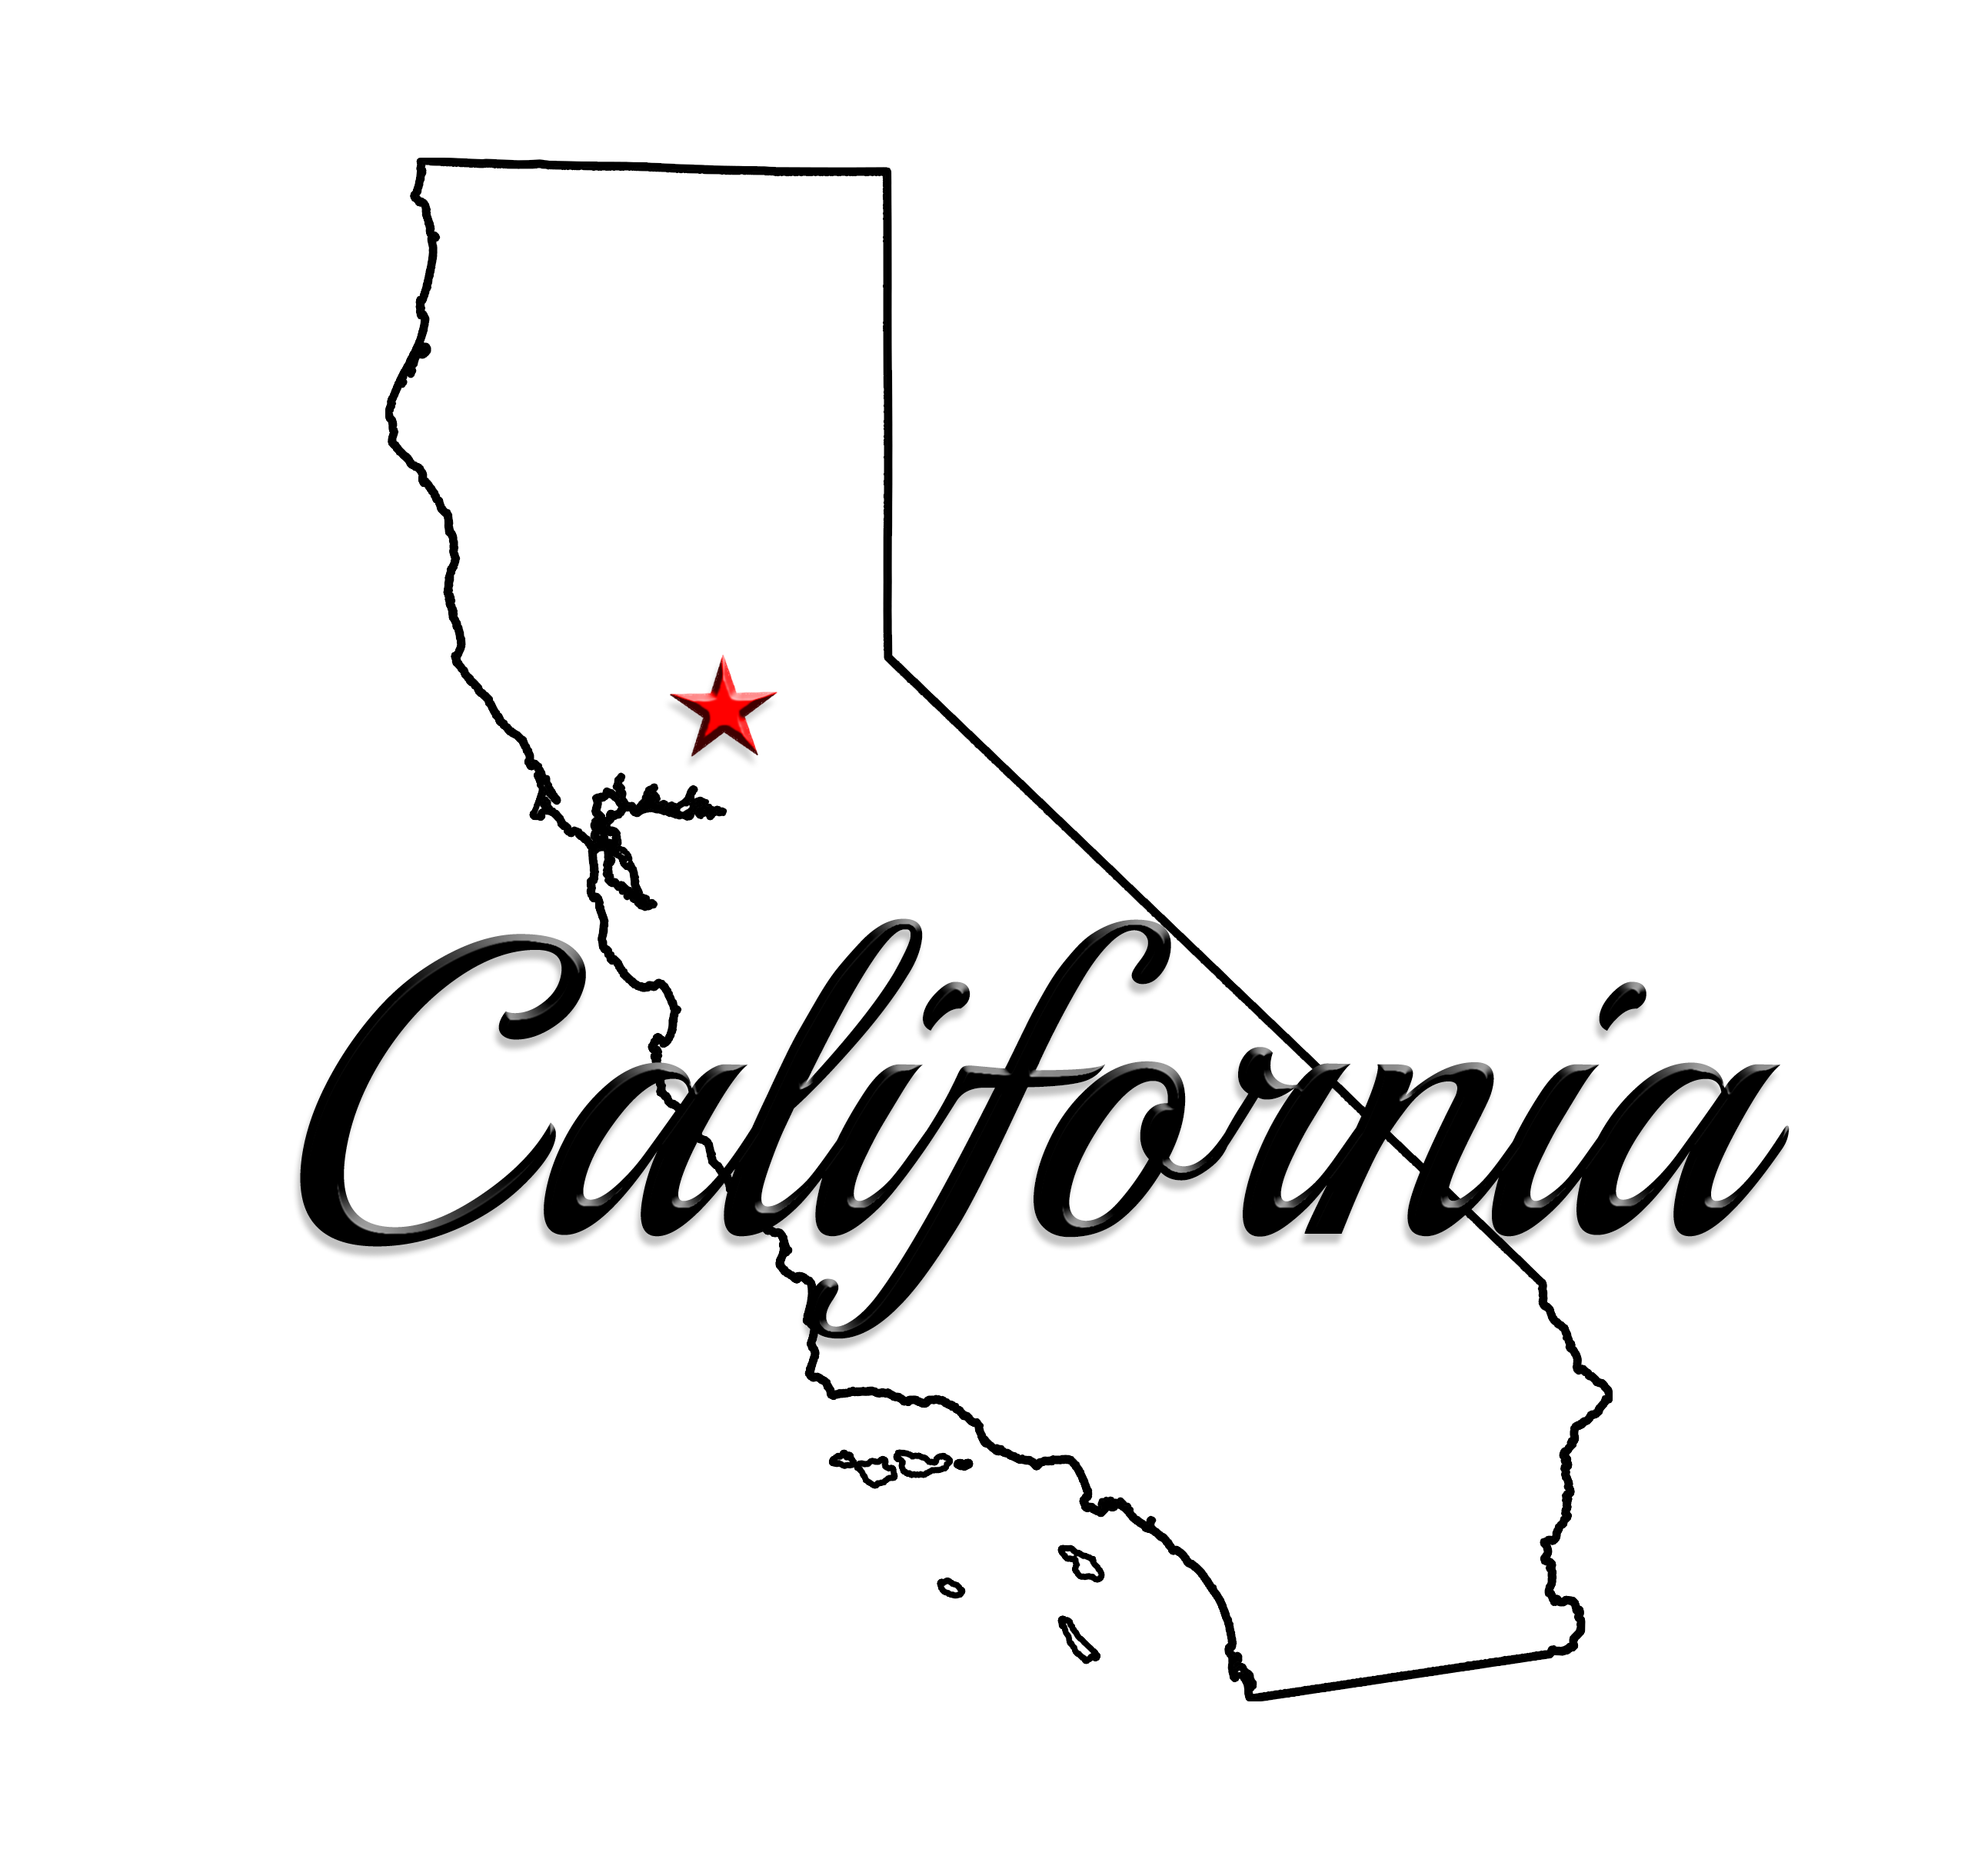 graphic free Cali free for download. California clipart state.